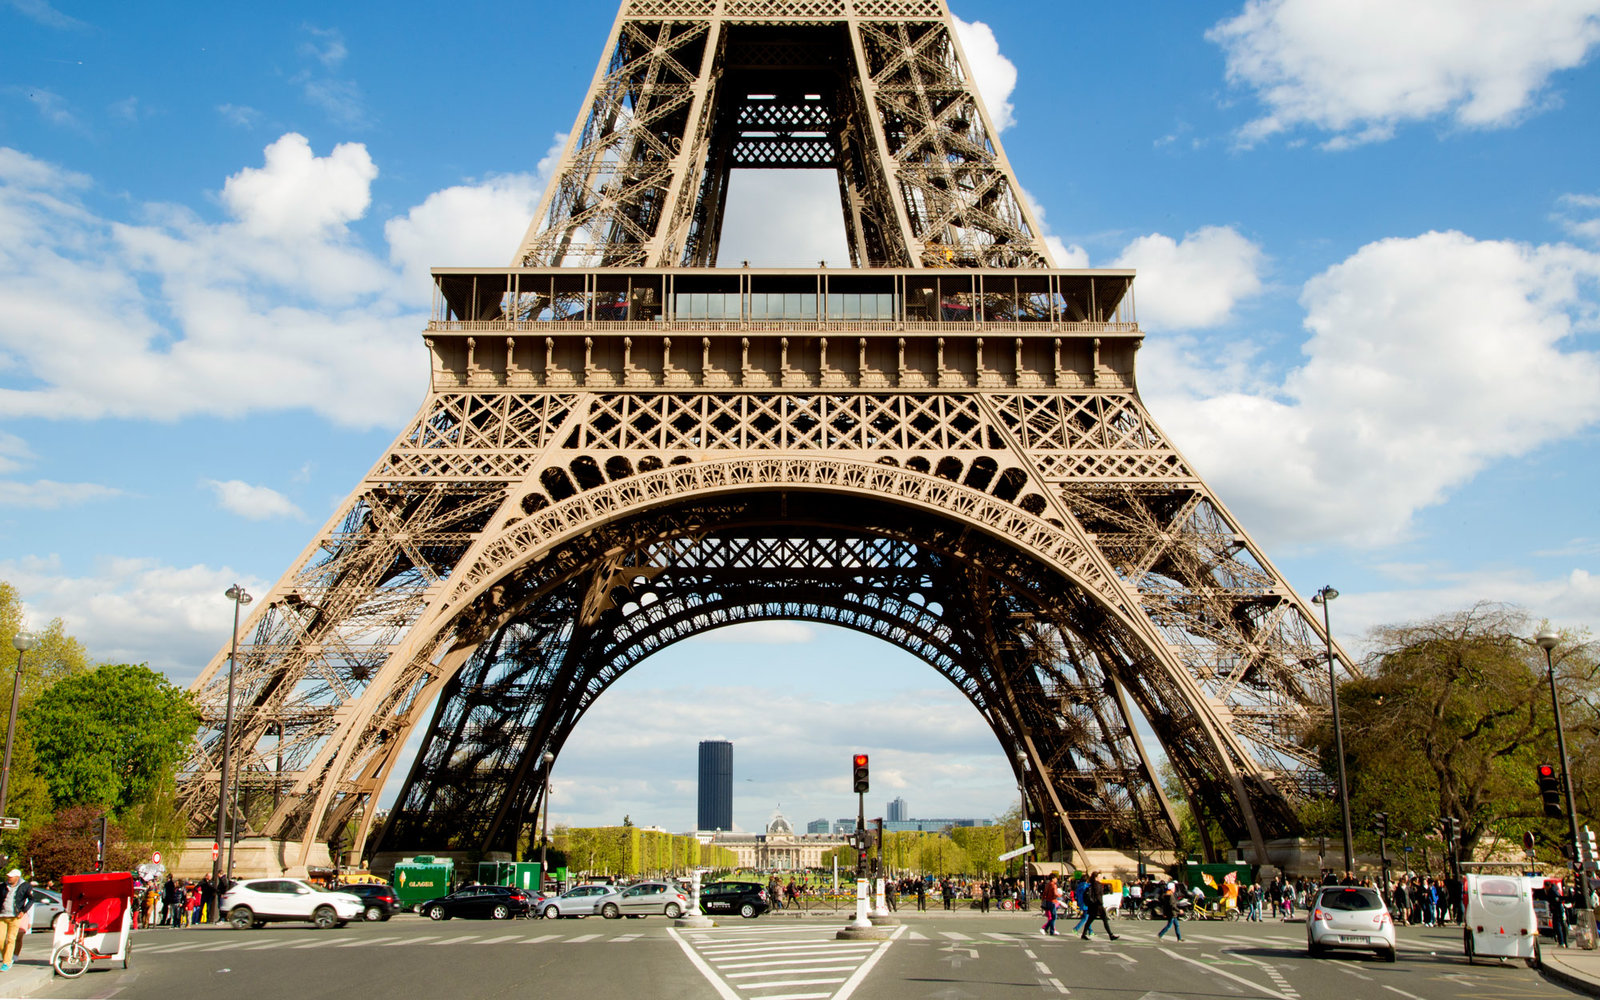 News: You Can Now Spend the Night in the Eiffel Tower